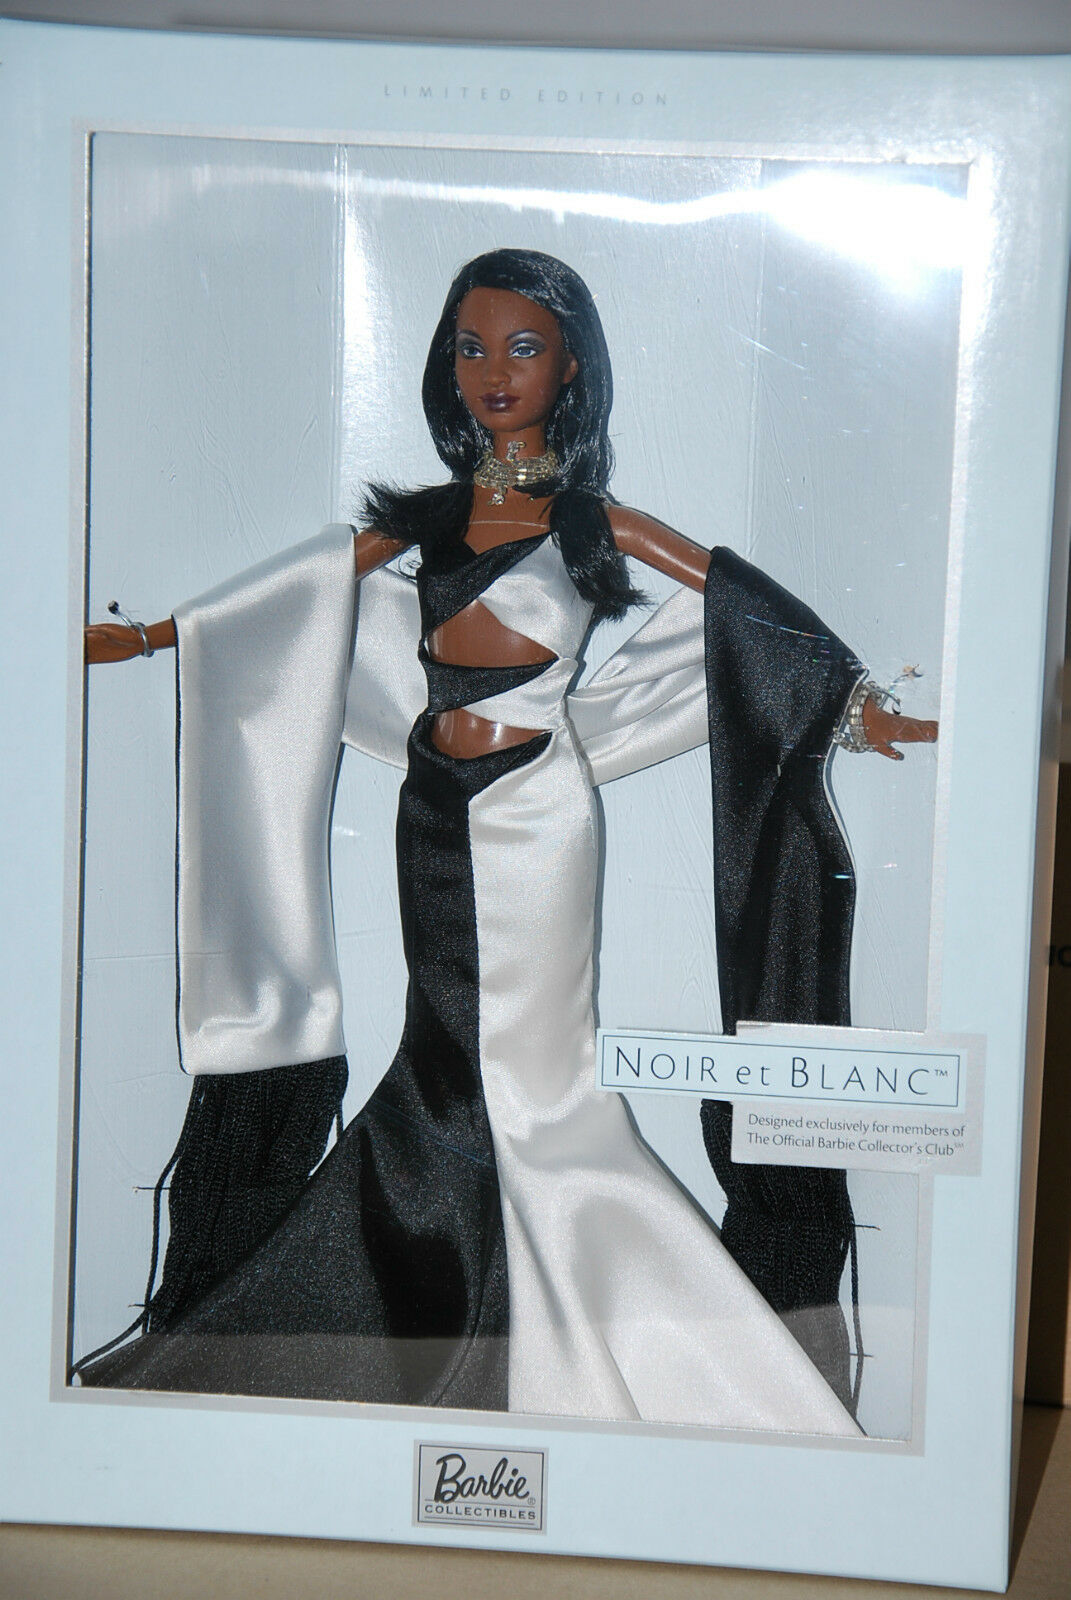 negro ET blanco BARBIE DOLL, OFFICIAL BARBIE COLLECTOR CLUB EXCLUSIVES, 2003, NRFB